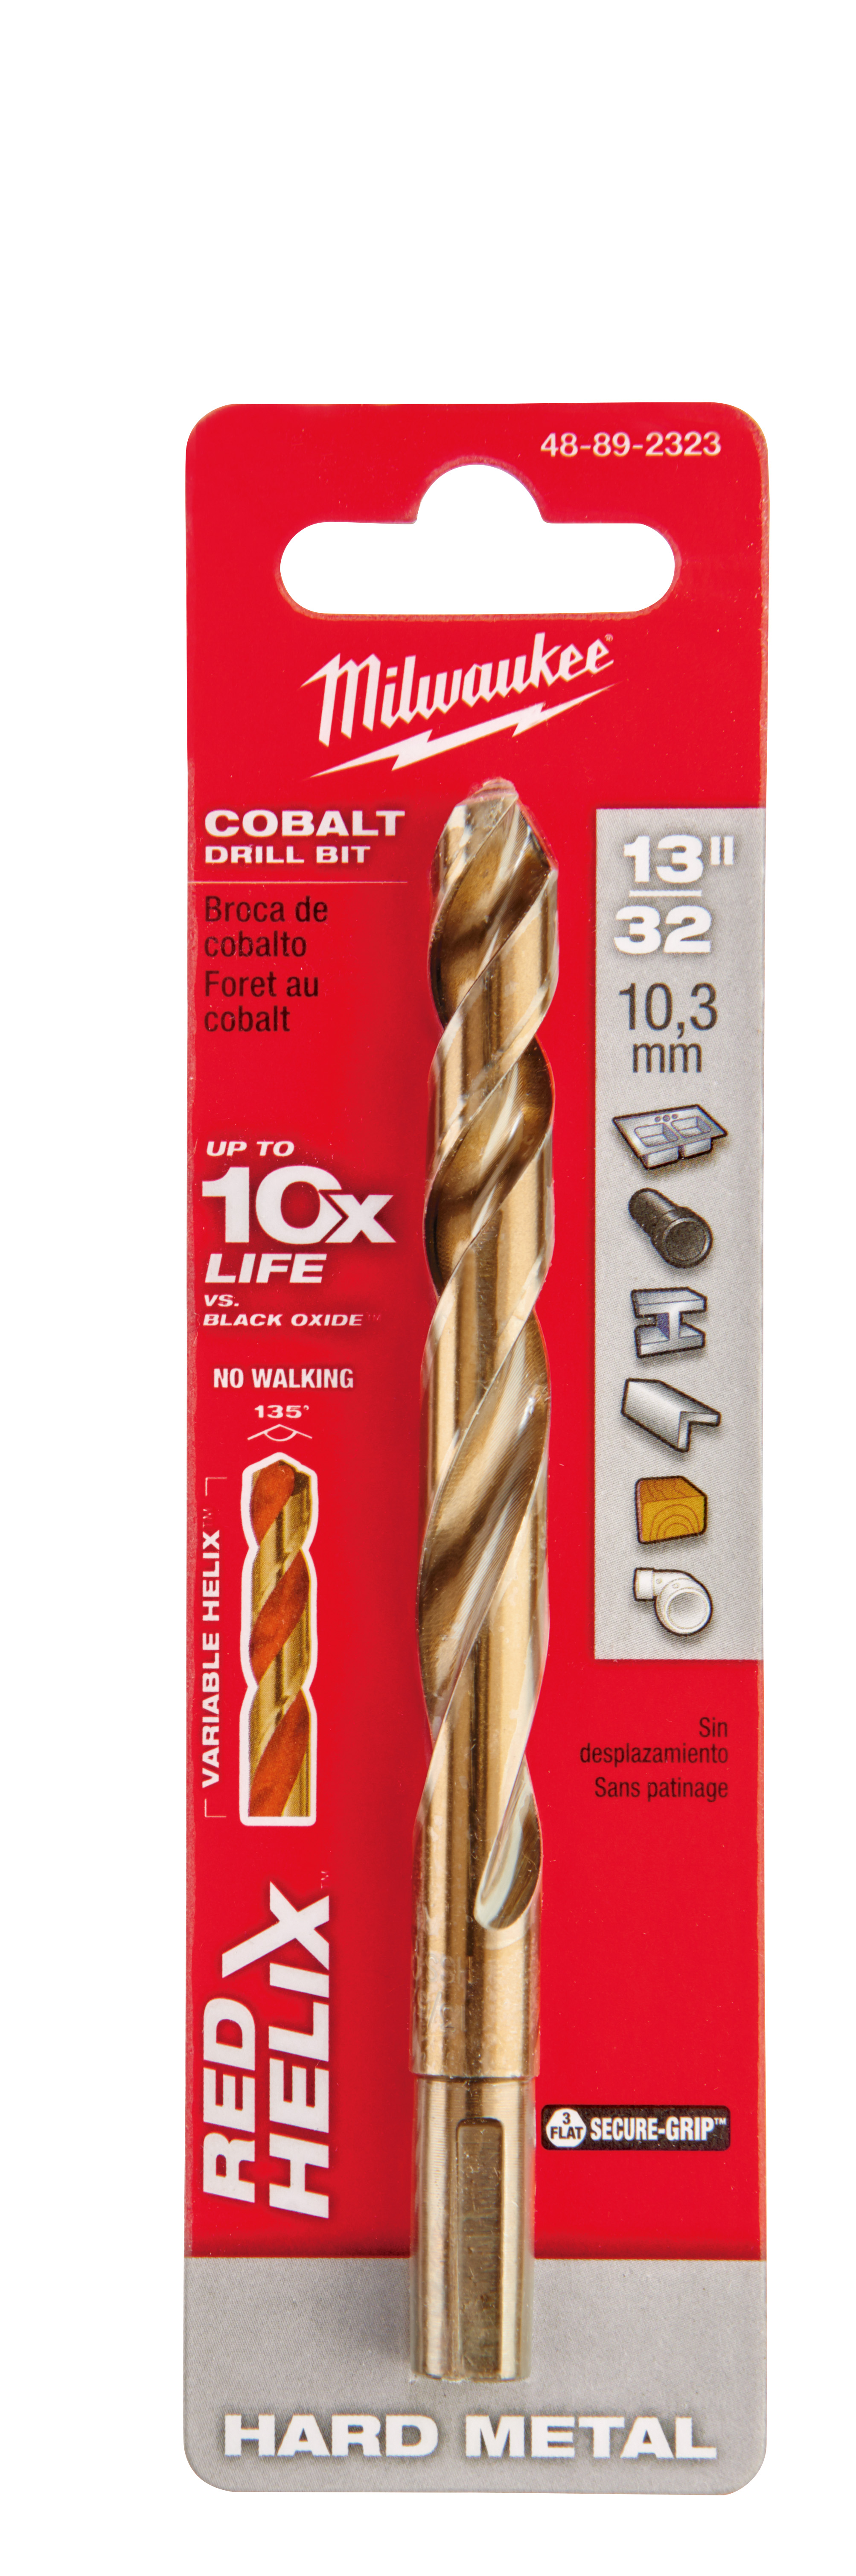 Milwaukee® 48-89-2323 RED HELIX™ Jobber Length Twist Drill Bit, 13/32 in Drill - Fraction, 0.4062 in Drill - Decimal Inch, 135 deg Point, High Speed Cobalt, Uncoated